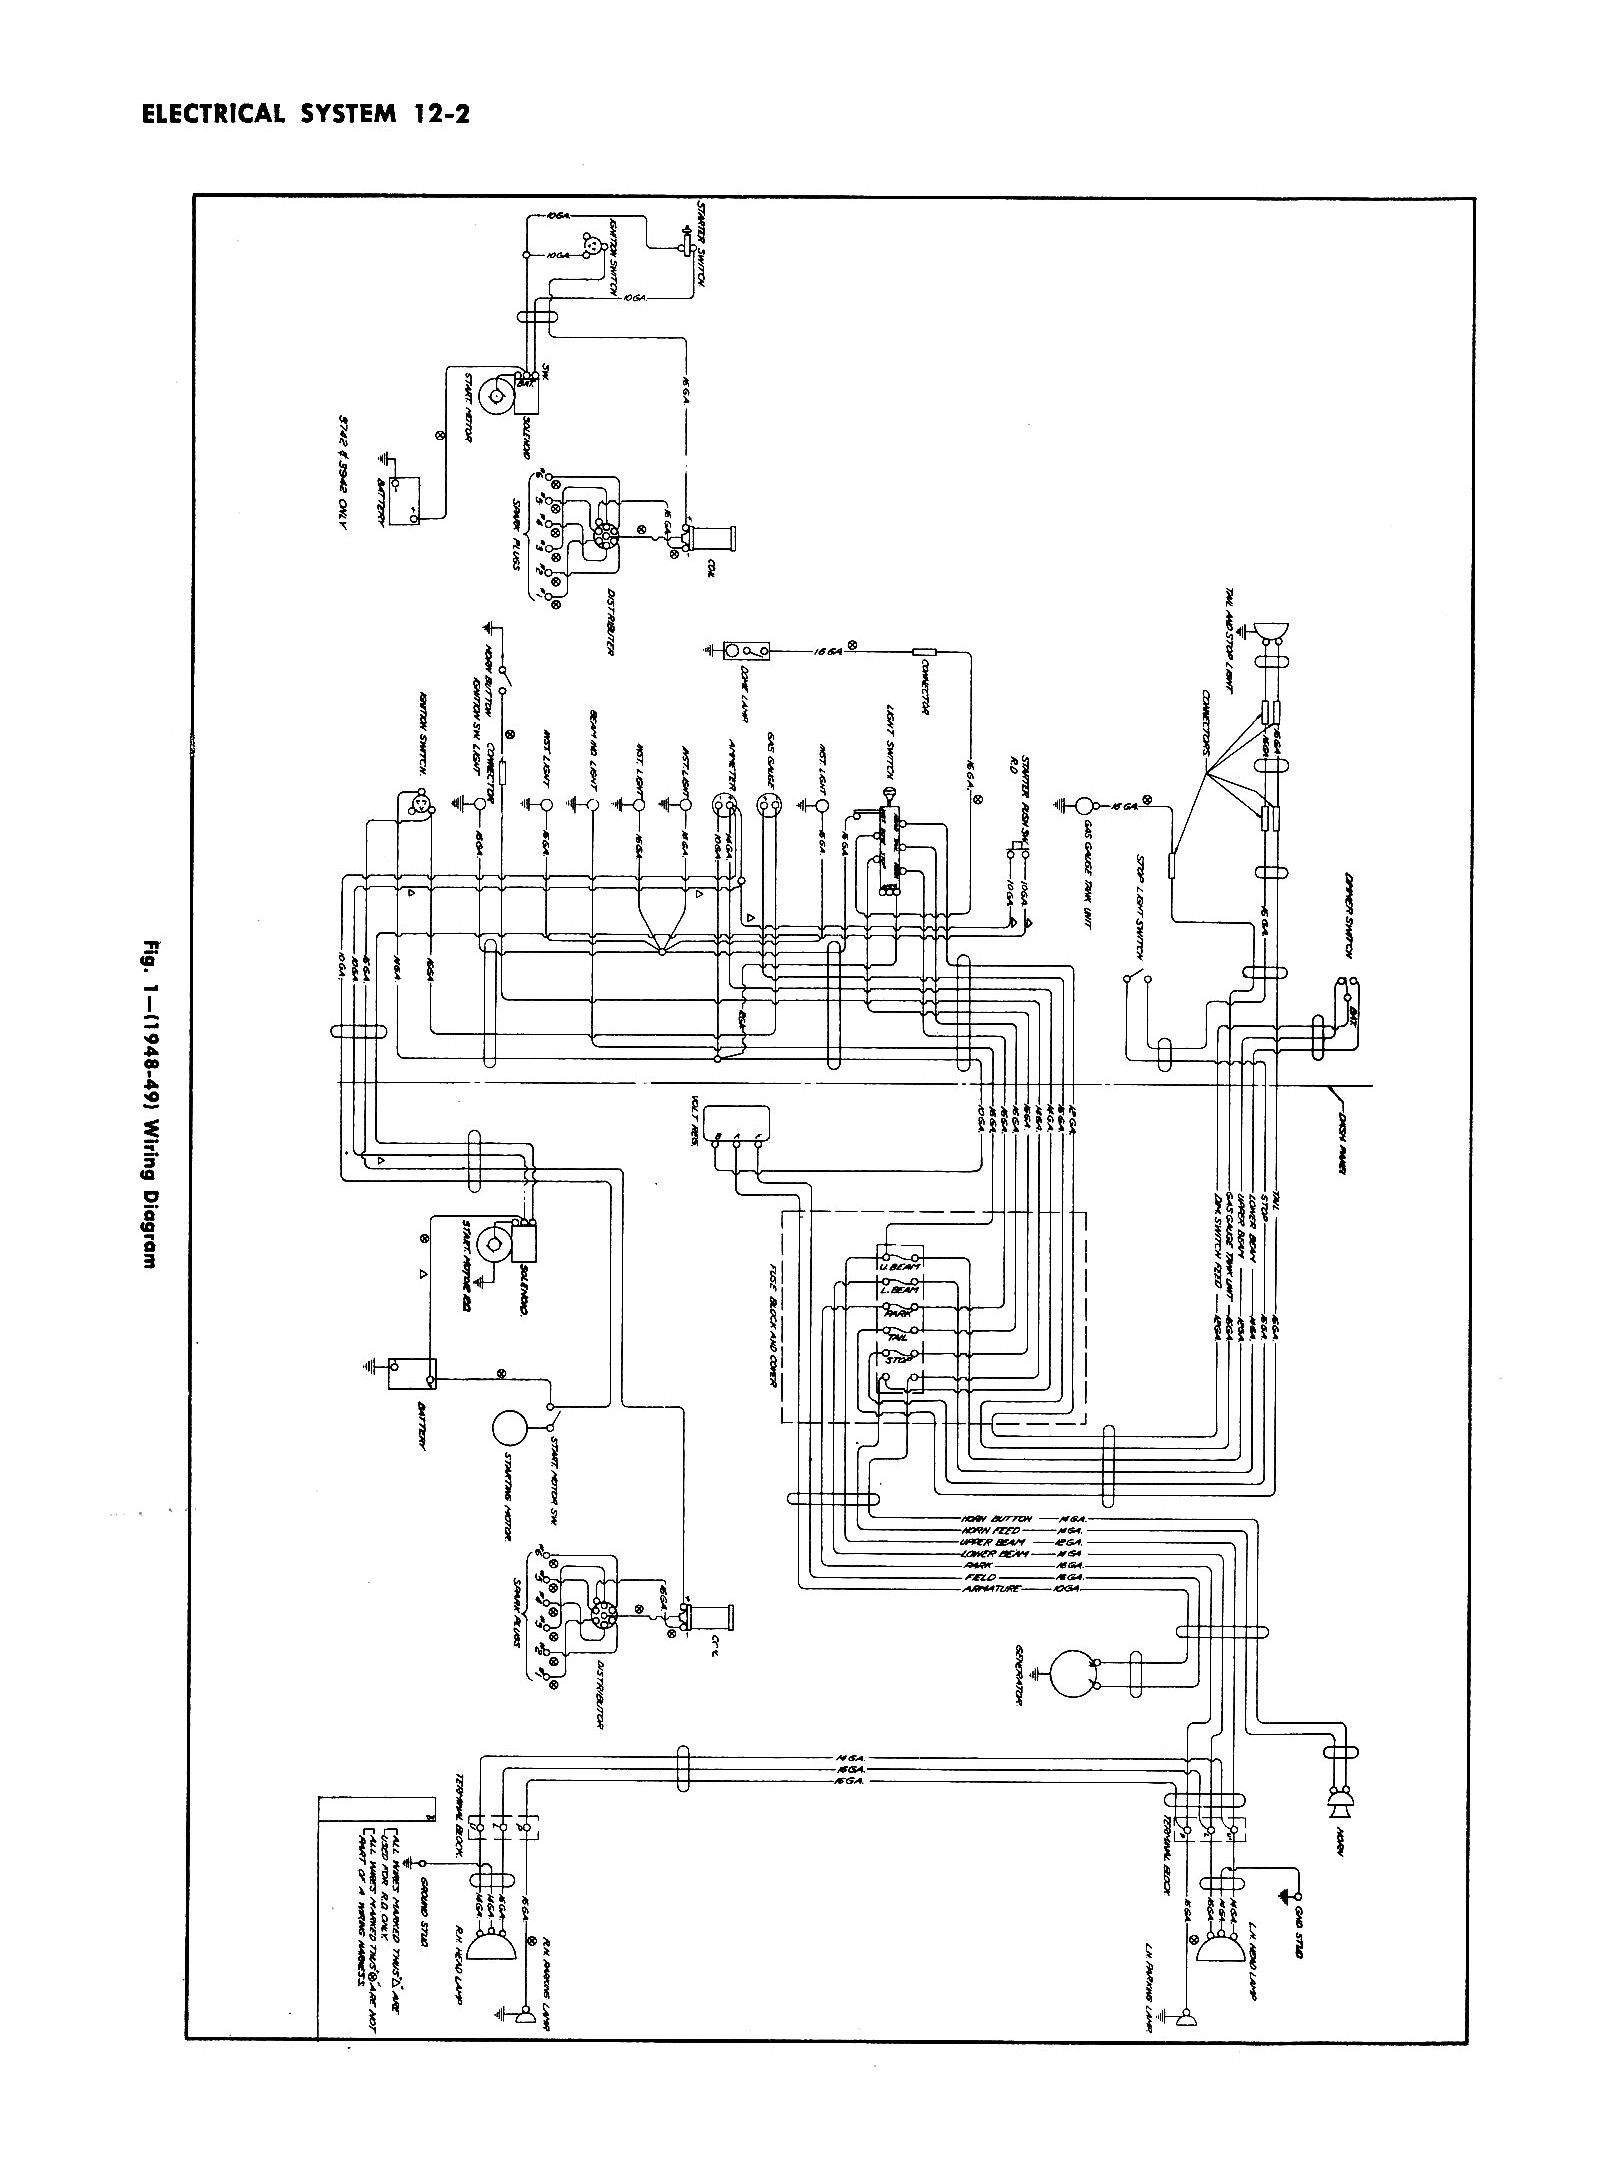 Gmc Truck Schematics Simple Wiring Diagram 2001 Ford F250 Parts Schematic 1954 Schemes Diagrams Chevy